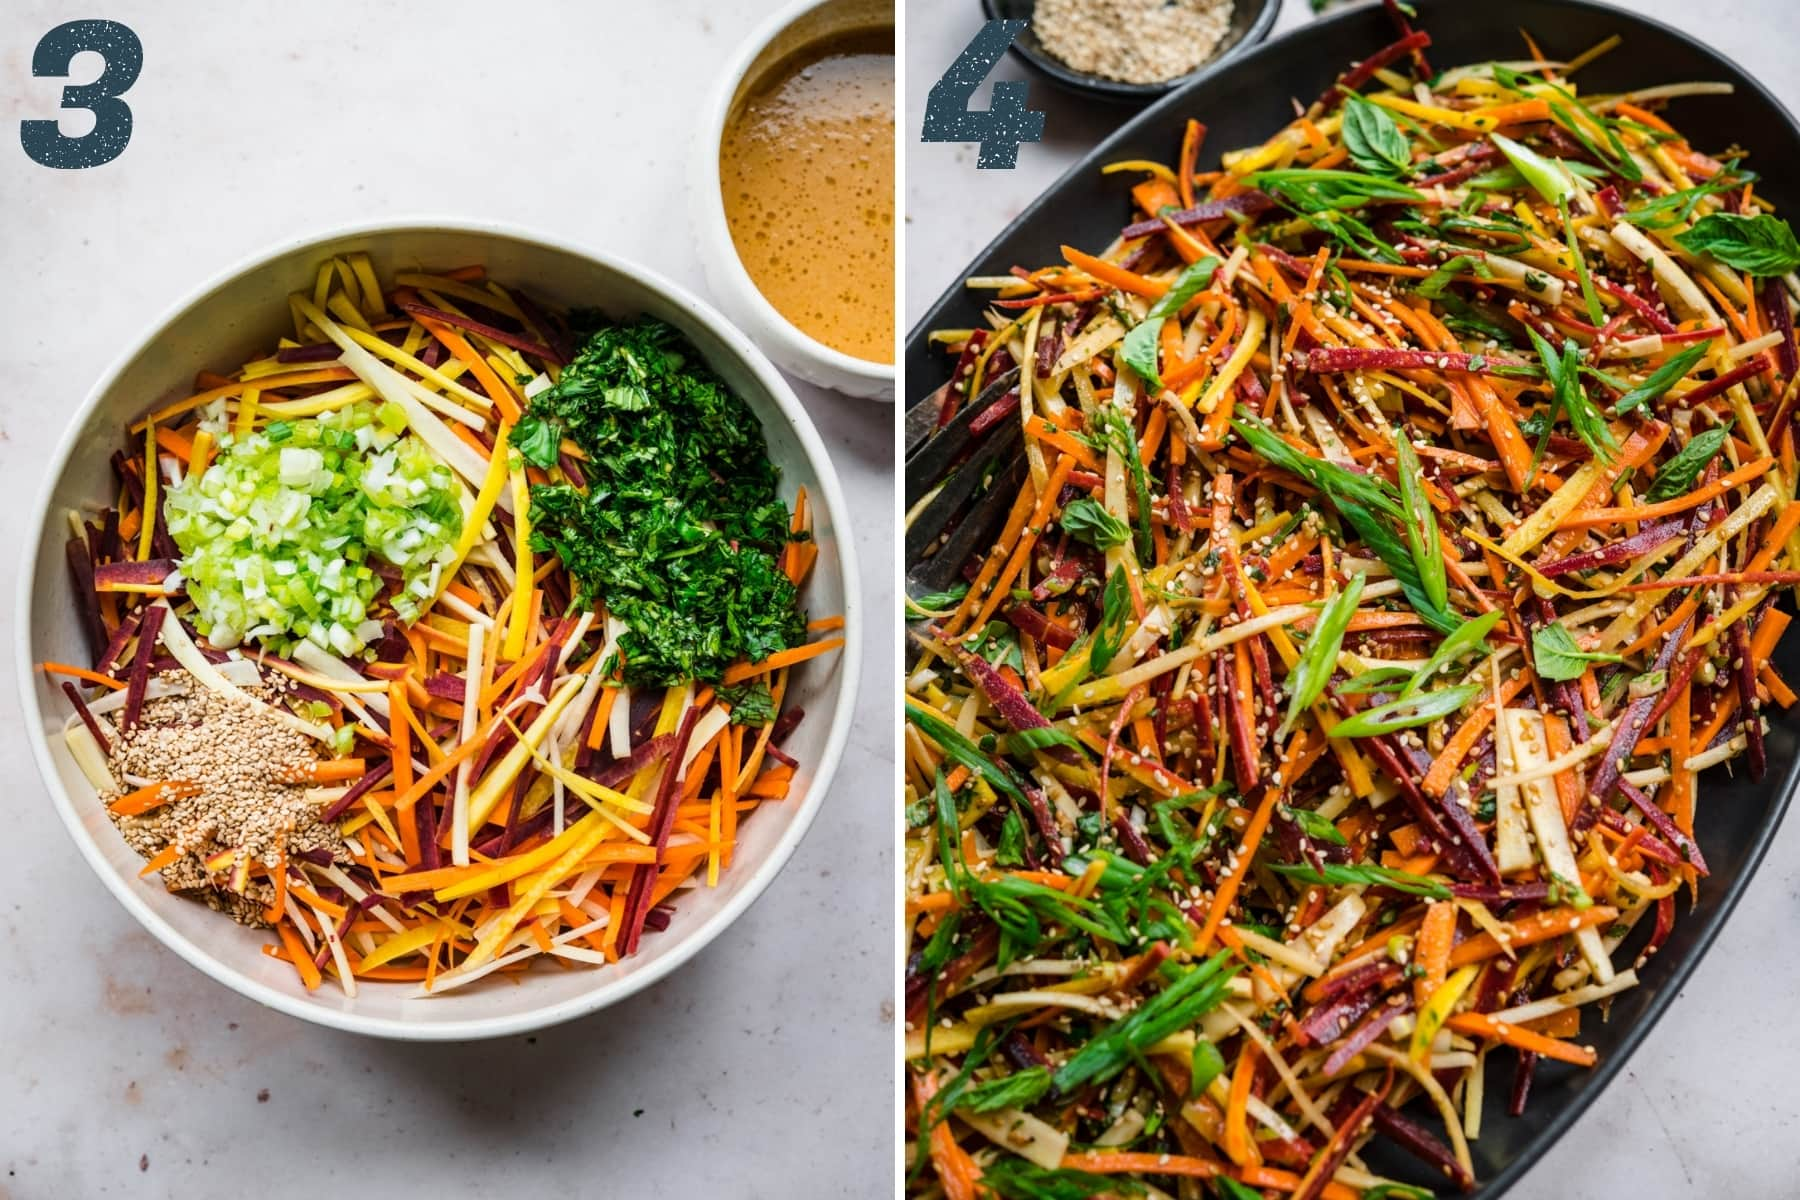 before and after mixing together ingredients for carrot sesame salad.